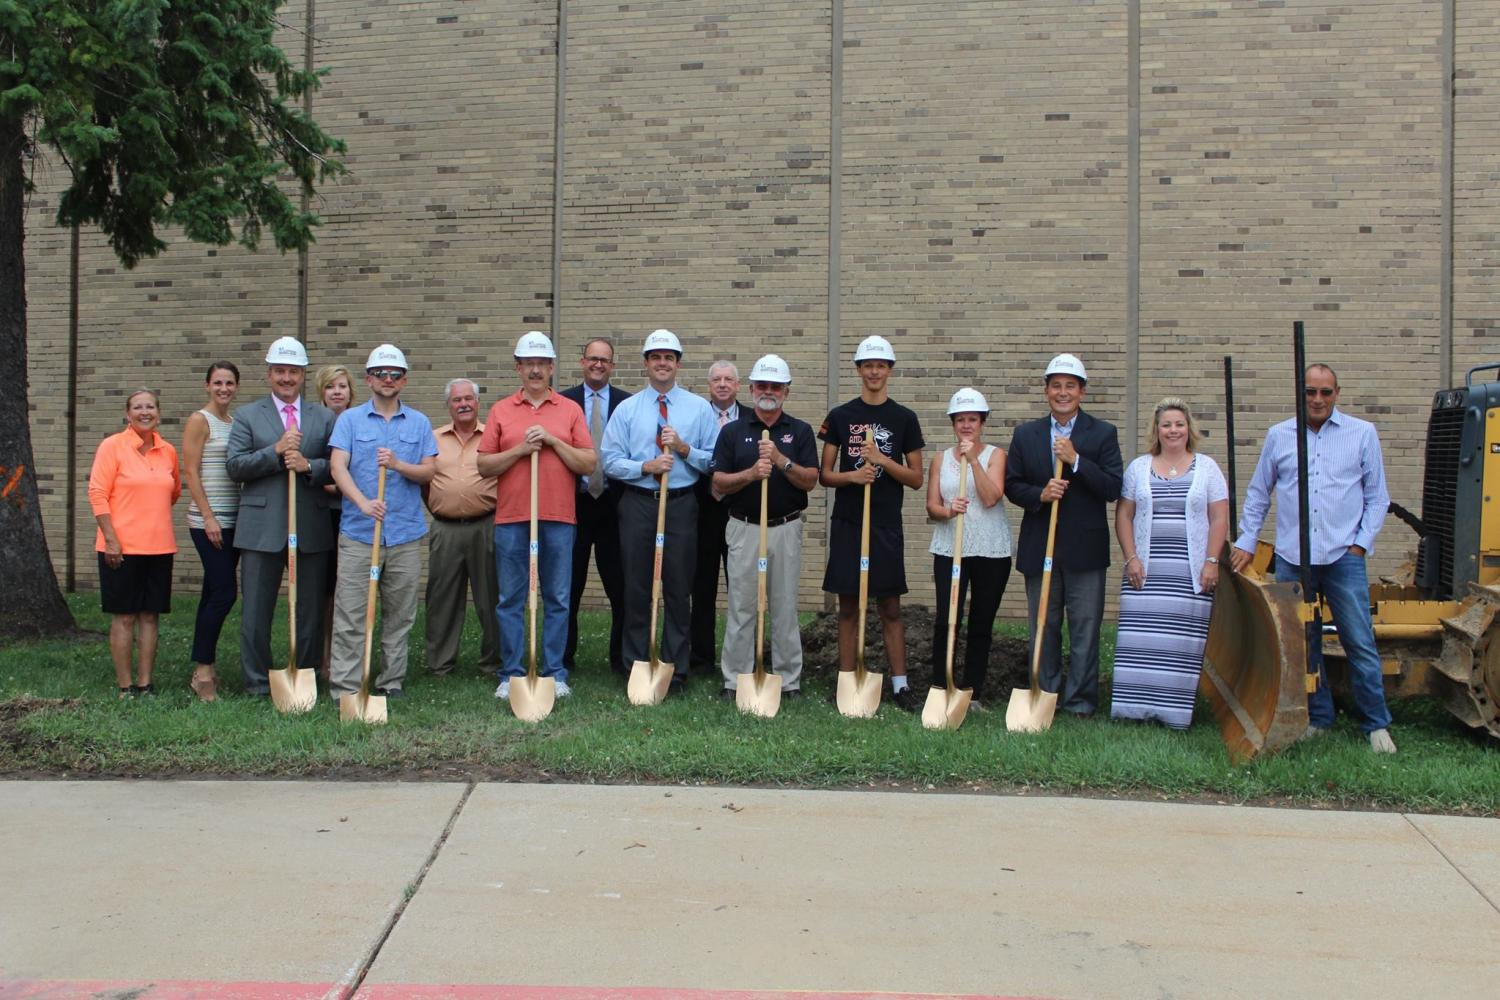 New Performing Arts Center coming to LPHS